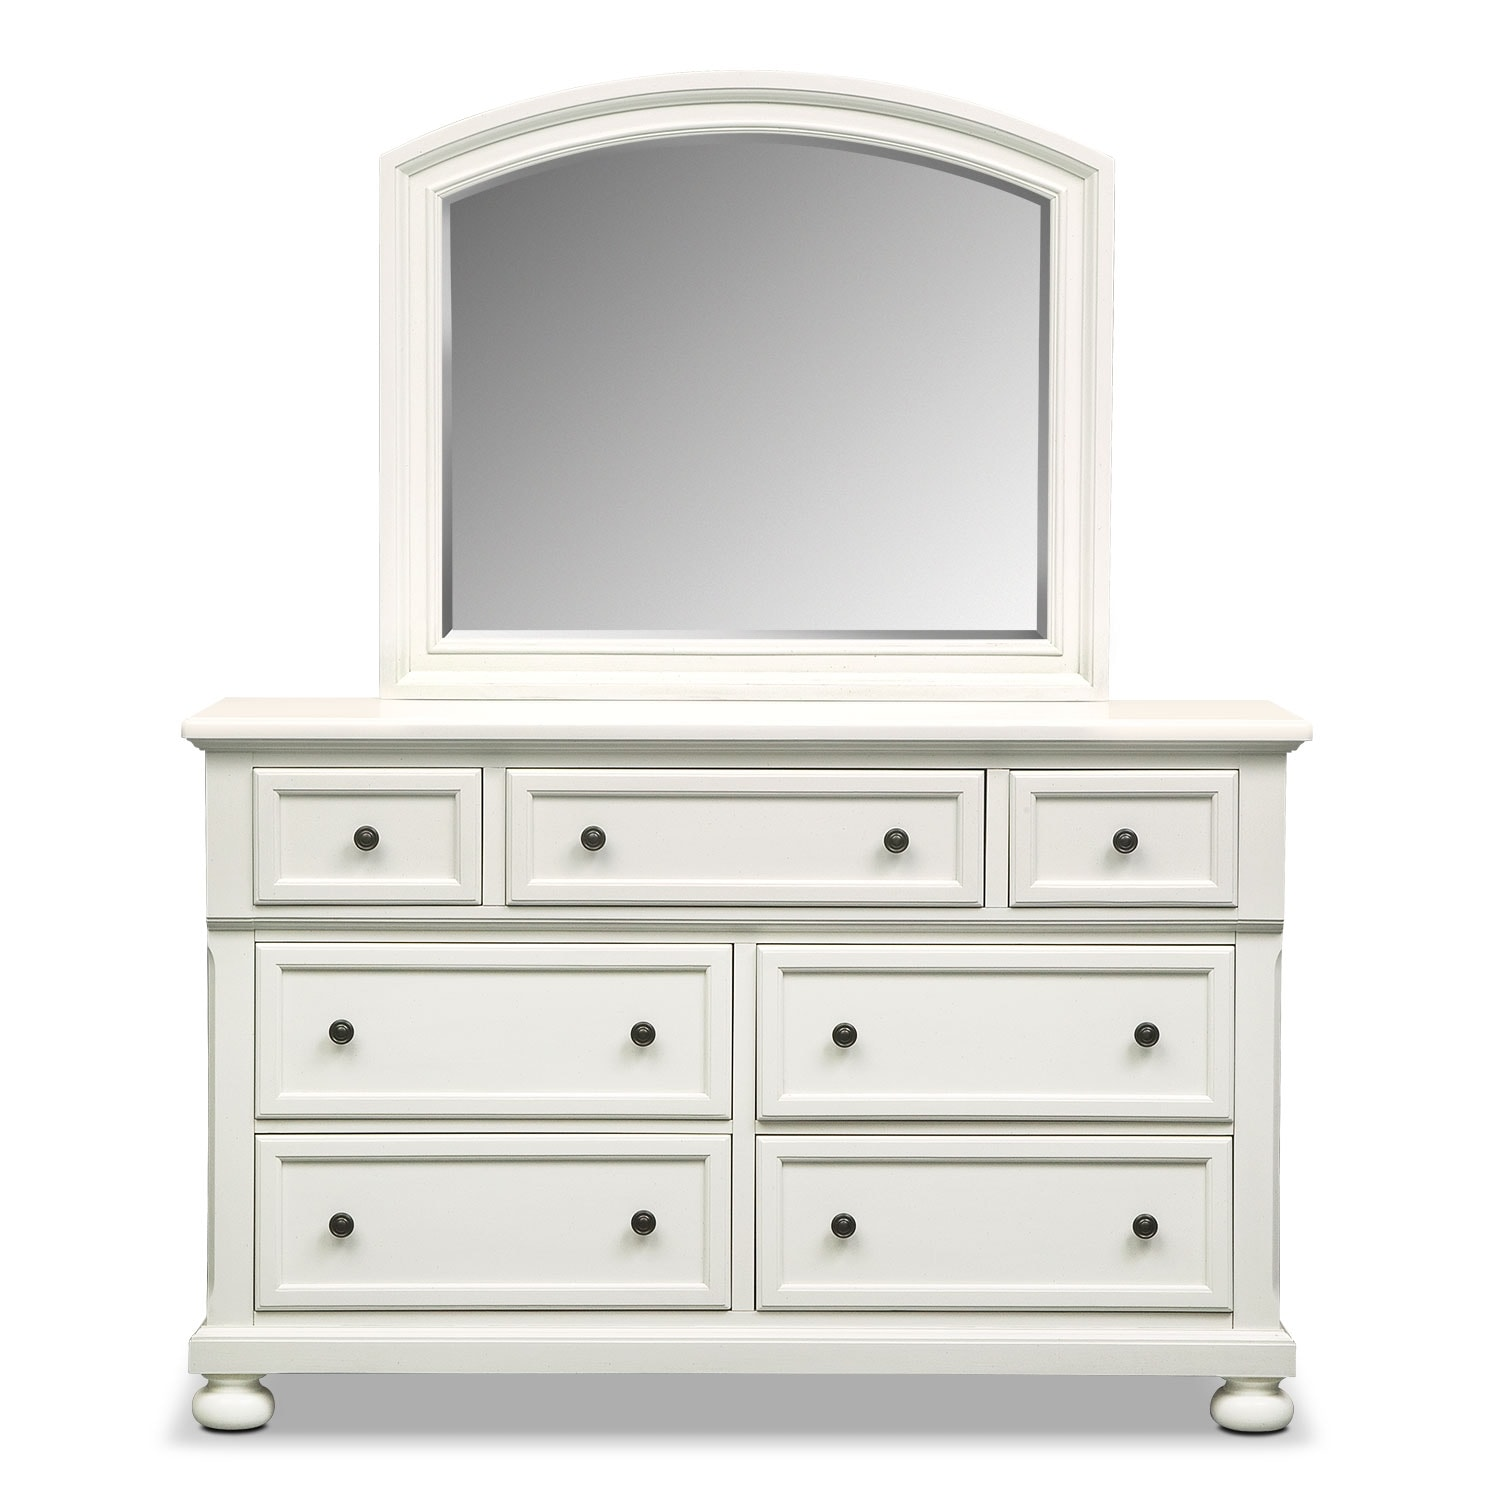 Bedroom Dressers With Mirrors: Hanover Dresser And Mirror - White